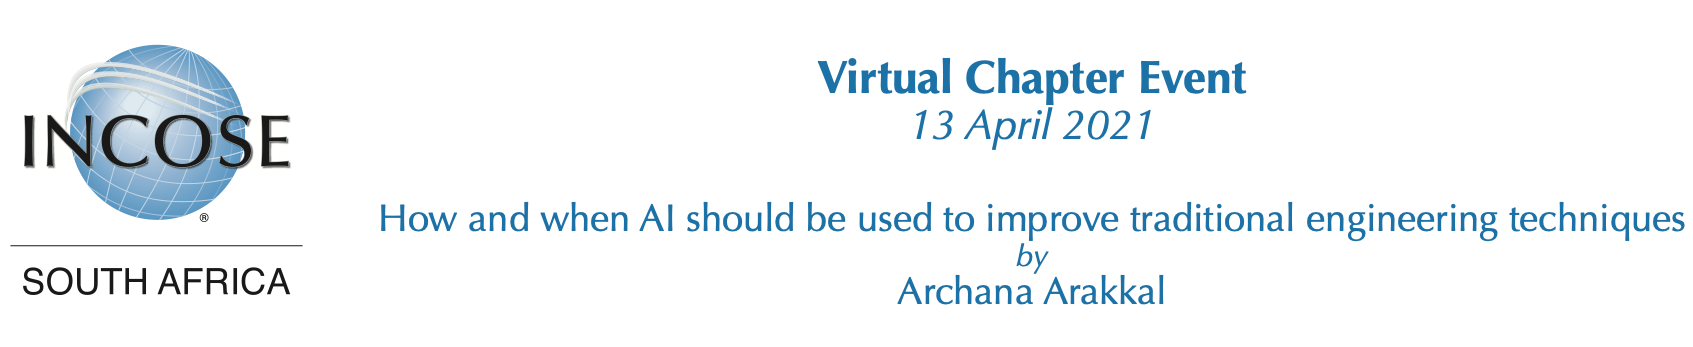 2021-April-Virtual-Chapter-Event.png